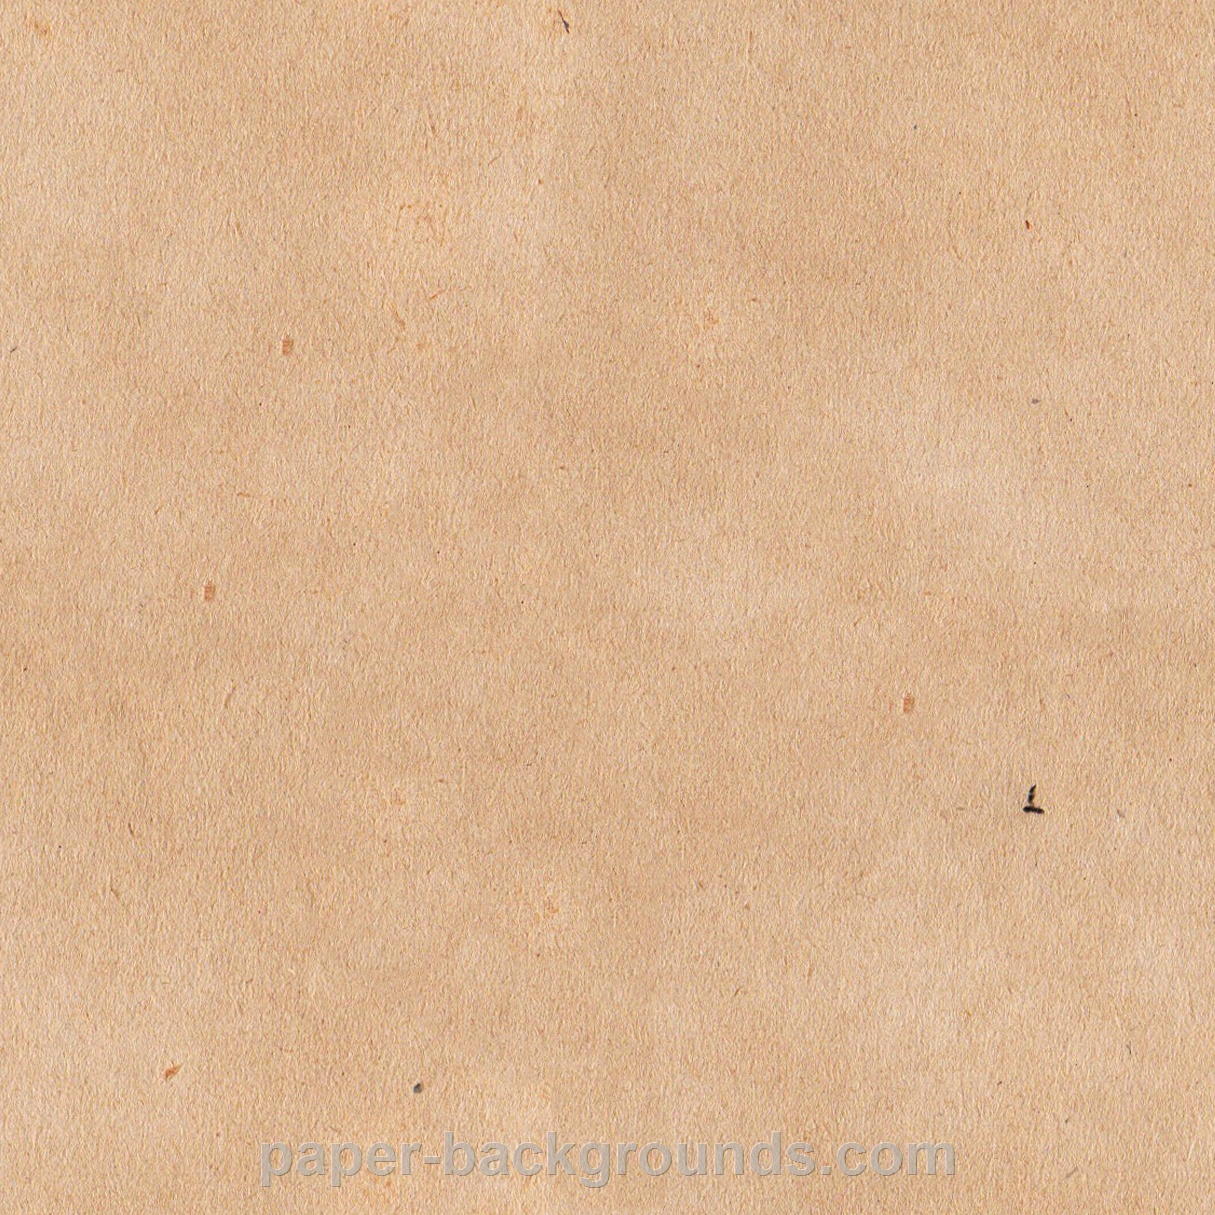 Old Paper Wallpaper: Paper Backgrounds